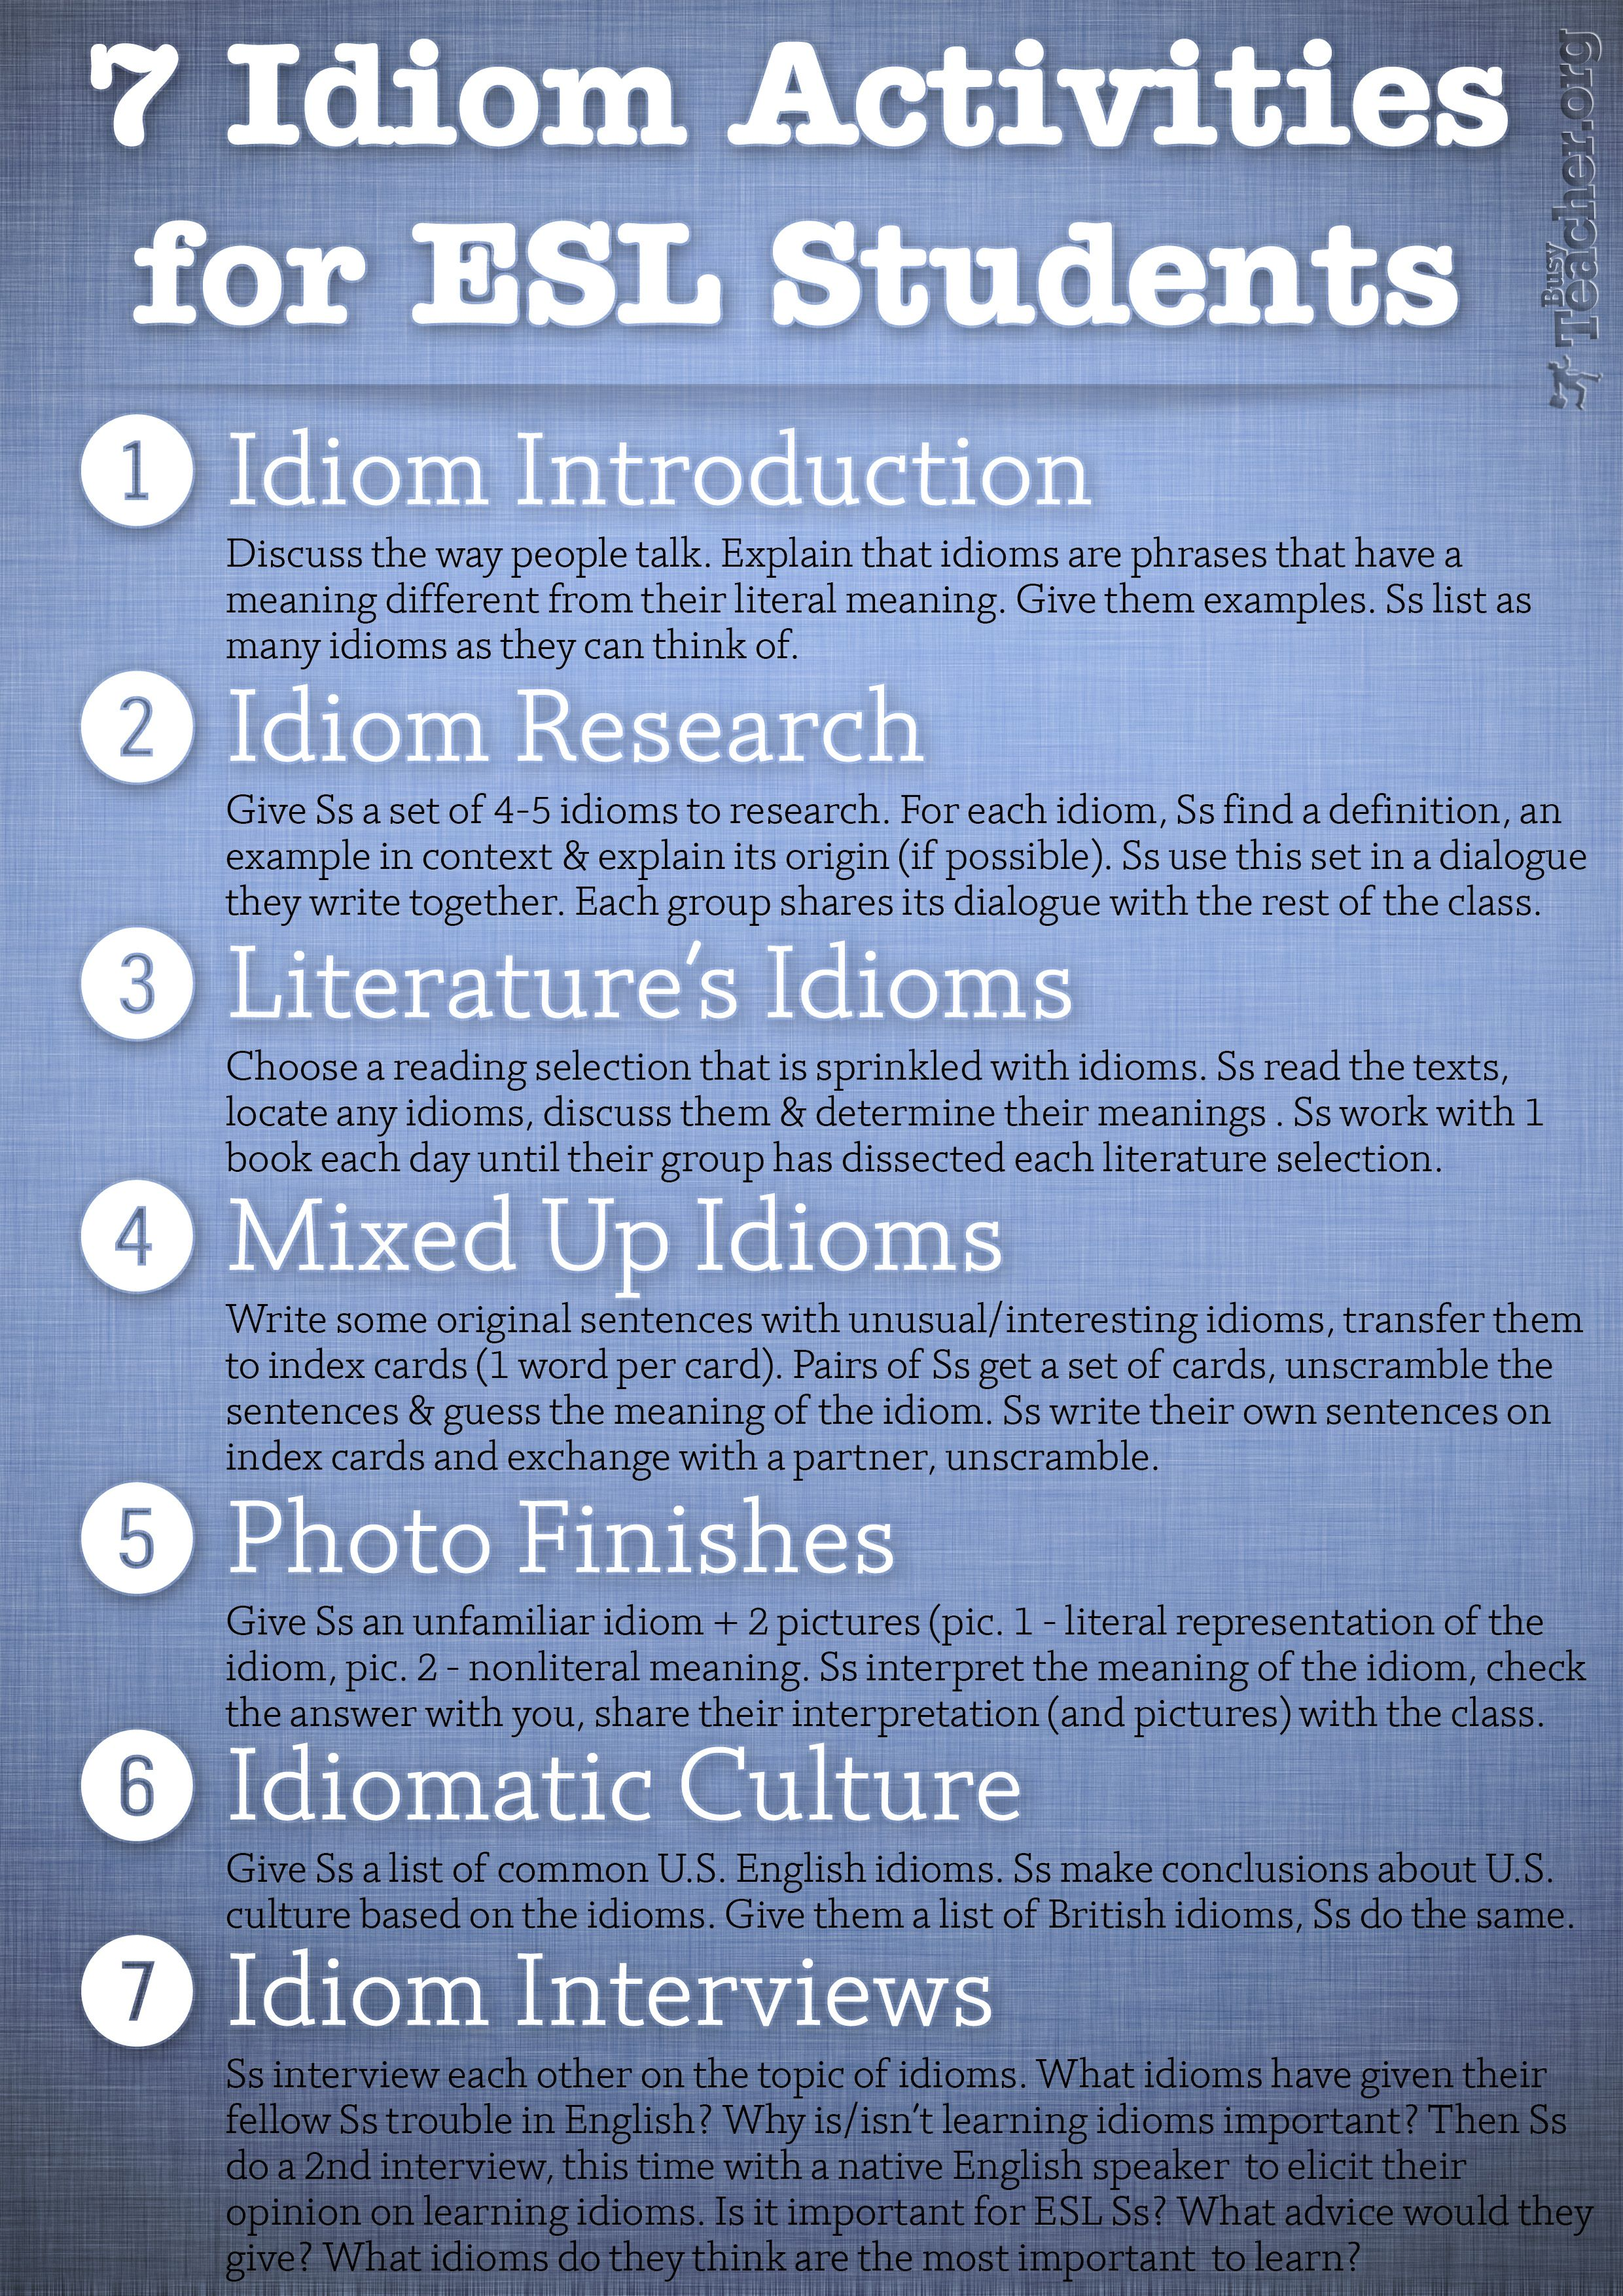 POSTER 7 Idiom Activities for ESL Students School